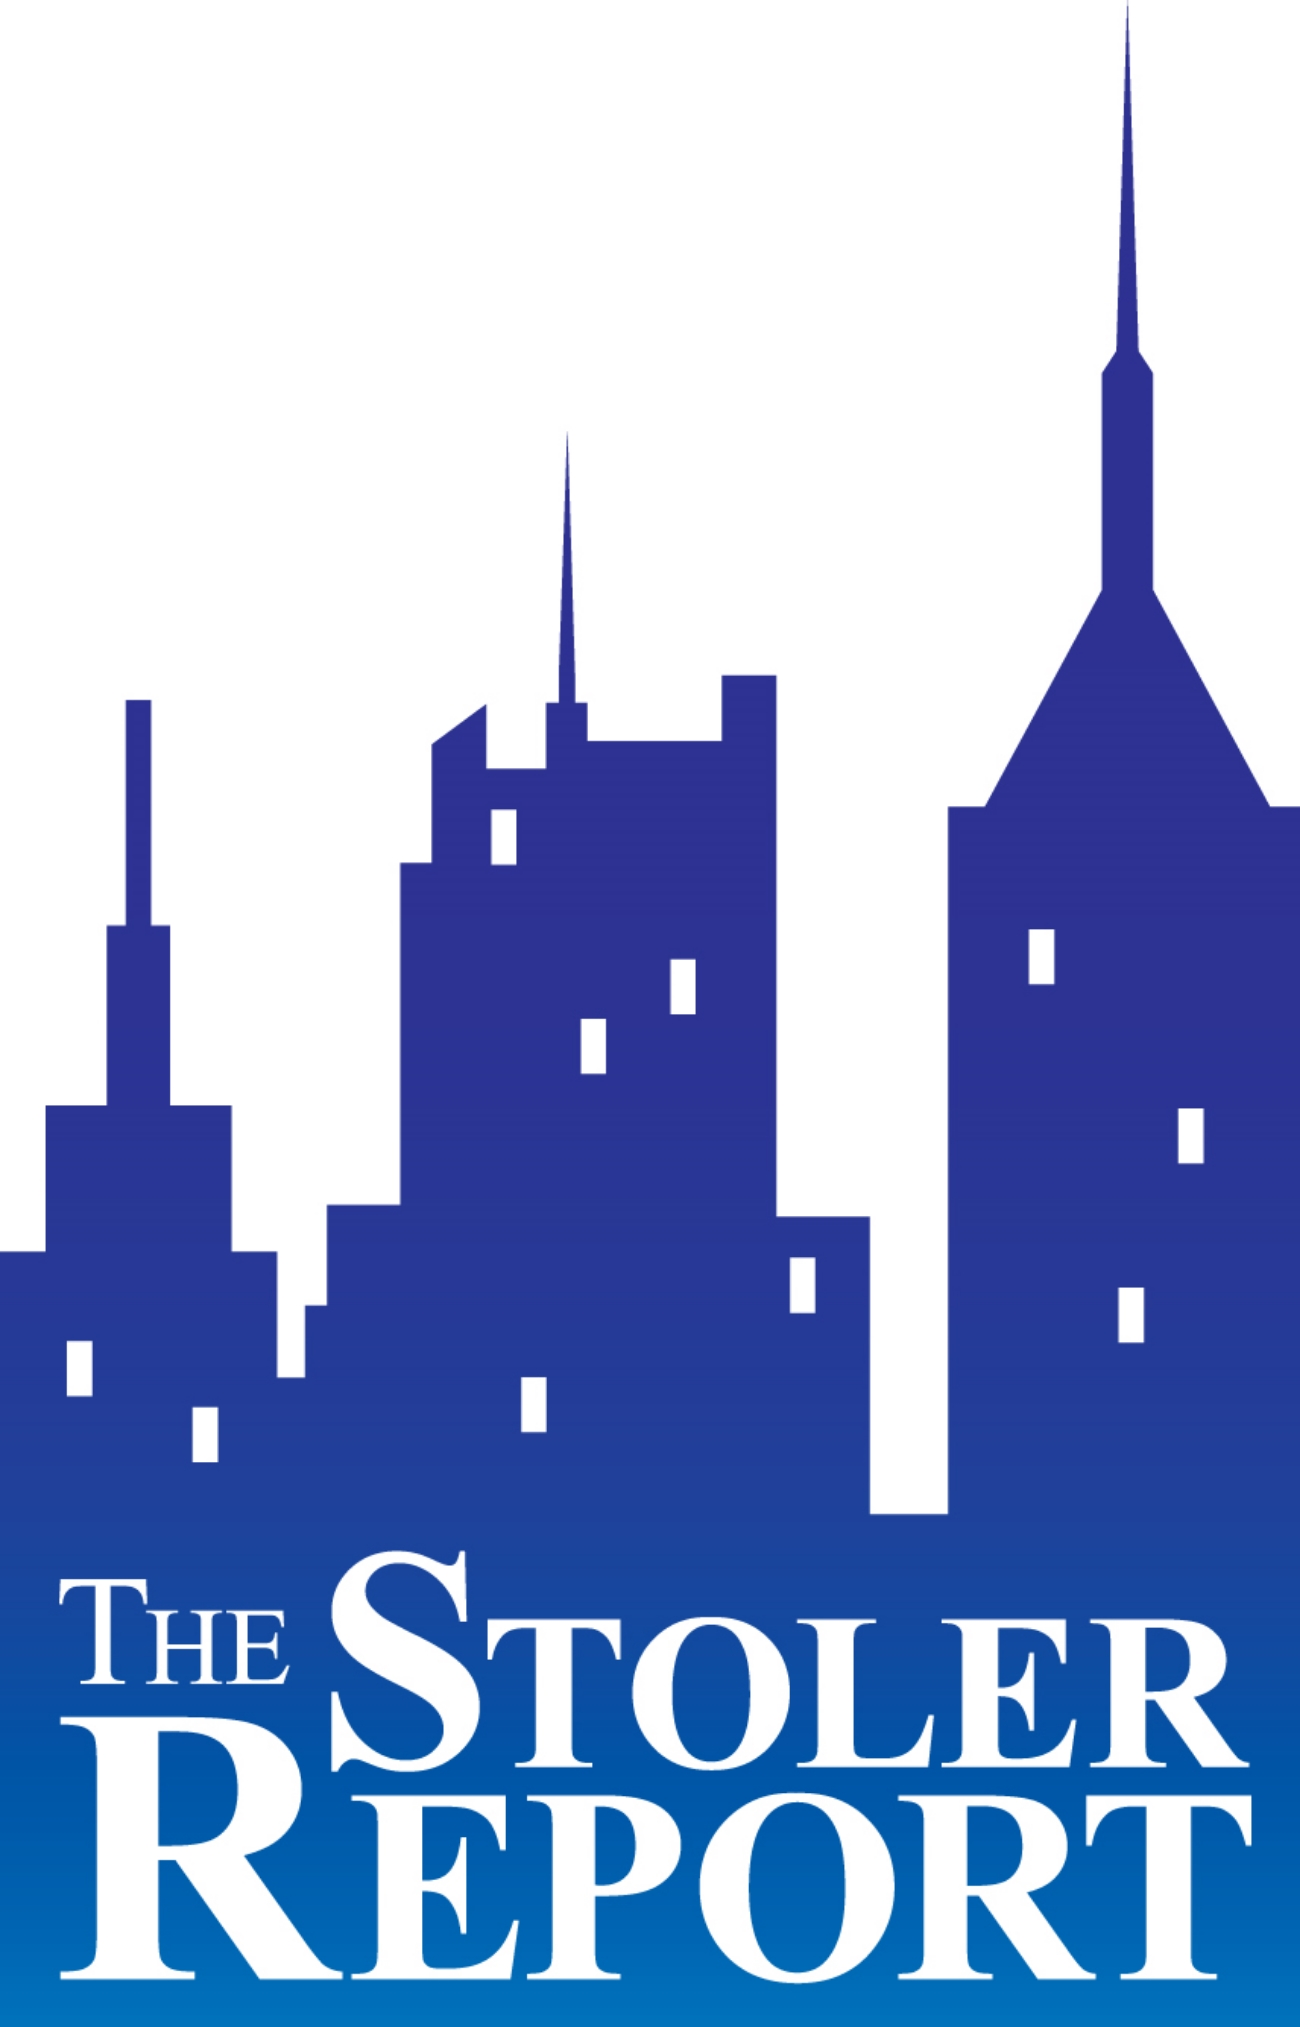 The Stoler Report